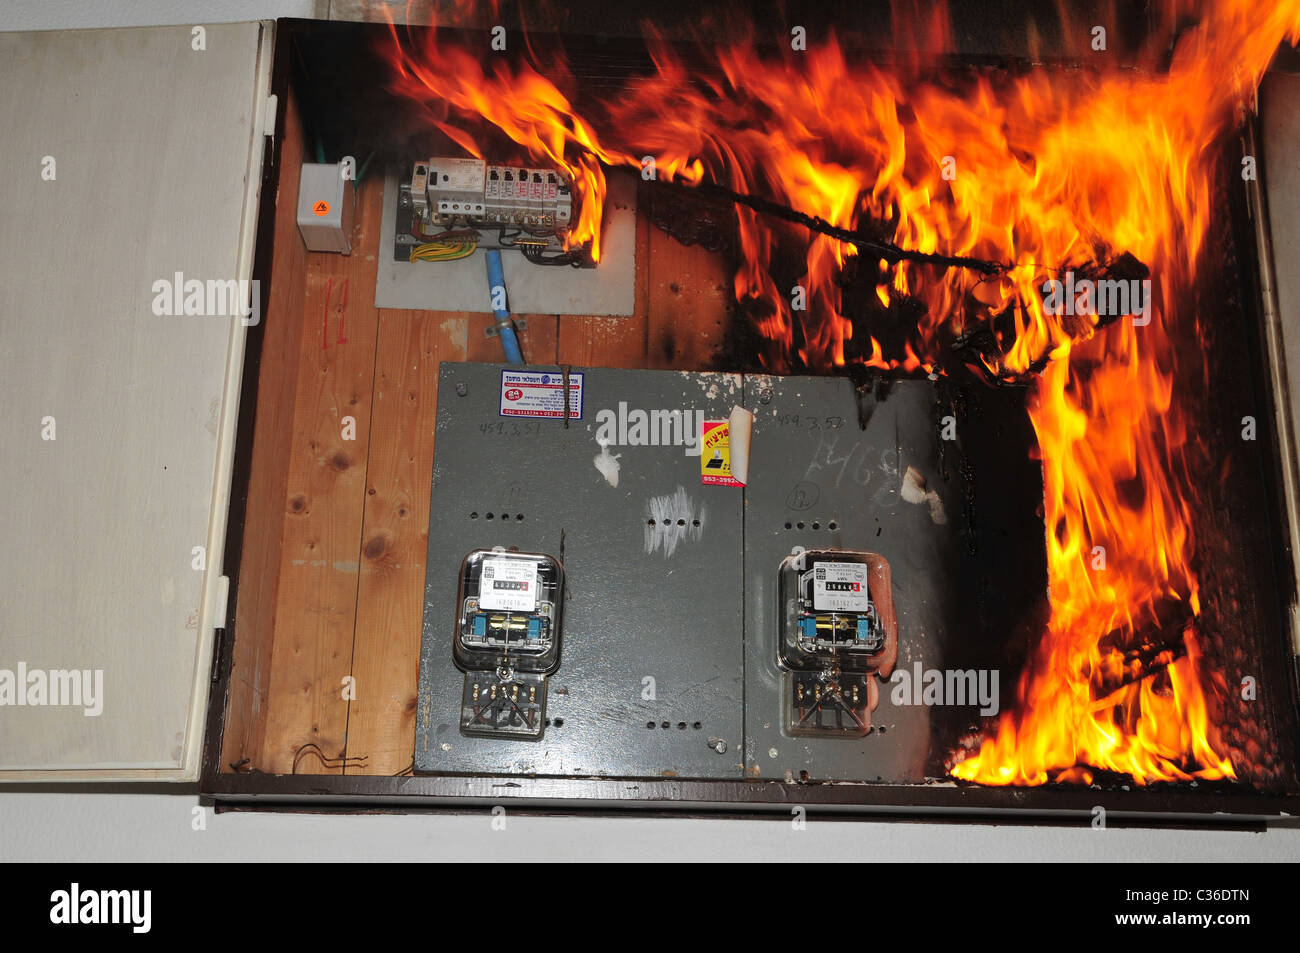 A Fire Broke Out In Household Electrical Fuse Box Flames Consumed Home The Board Photographed Israel